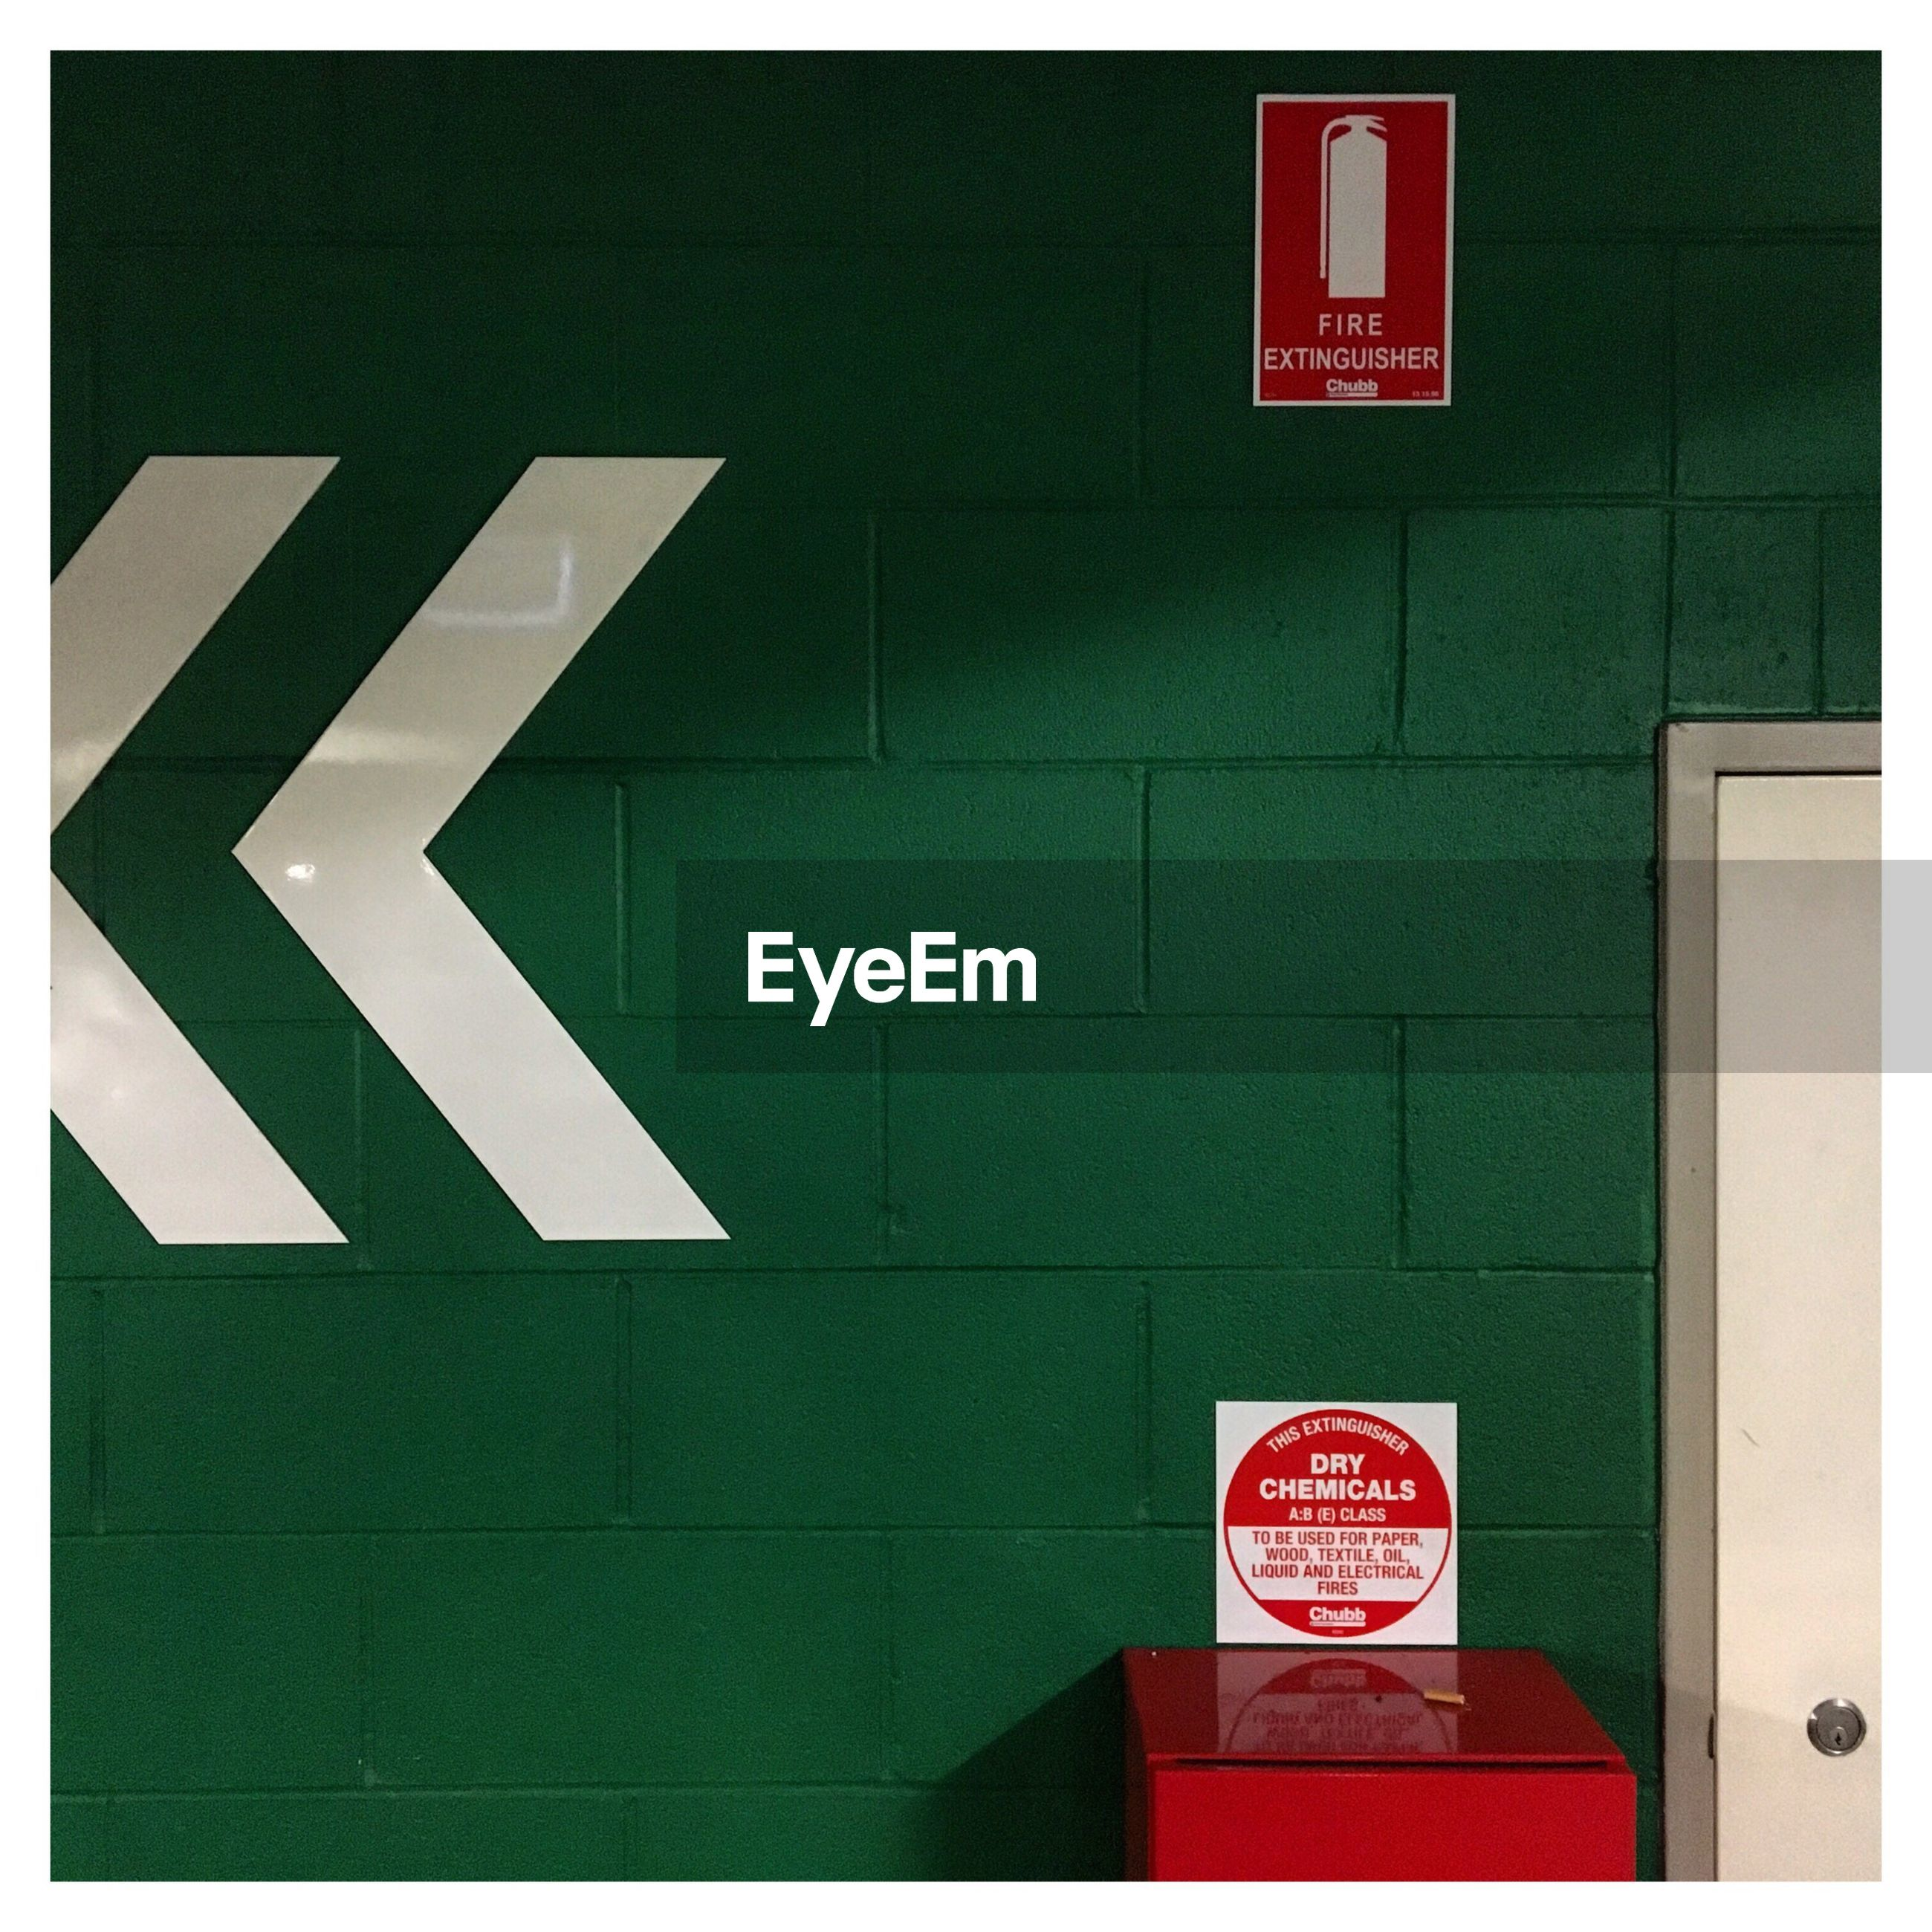 communication, text, guidance, sign, information sign, road sign, no people, red, exit sign, indoors, close-up, day